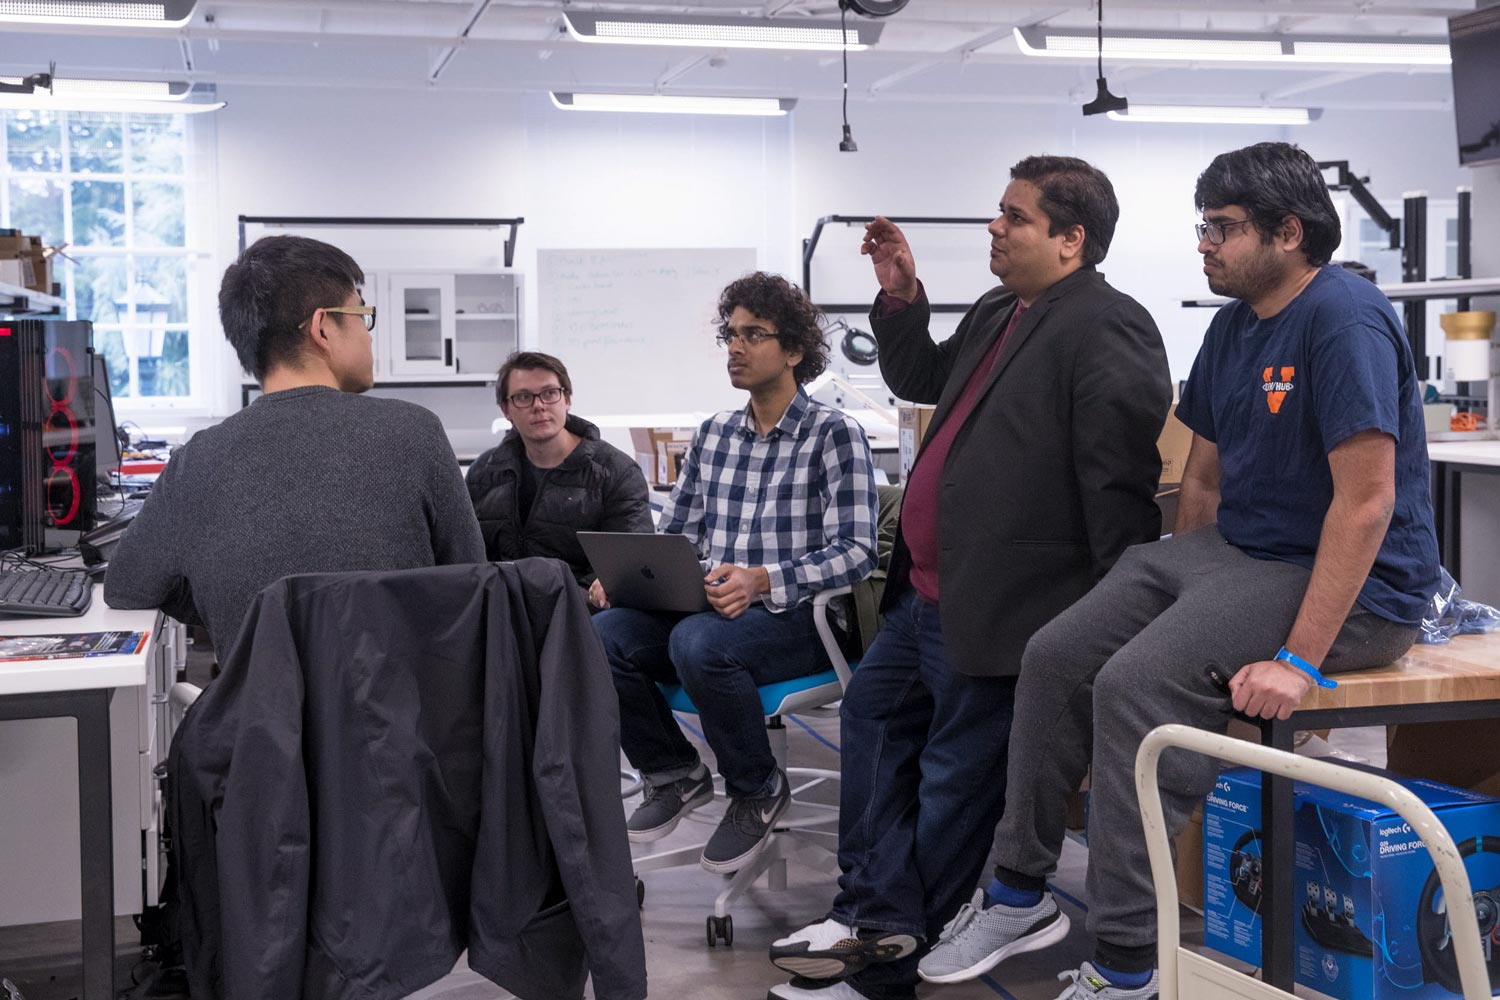 Behl is leading students in the design of control systems for safe, self-driving cars of the near-future.